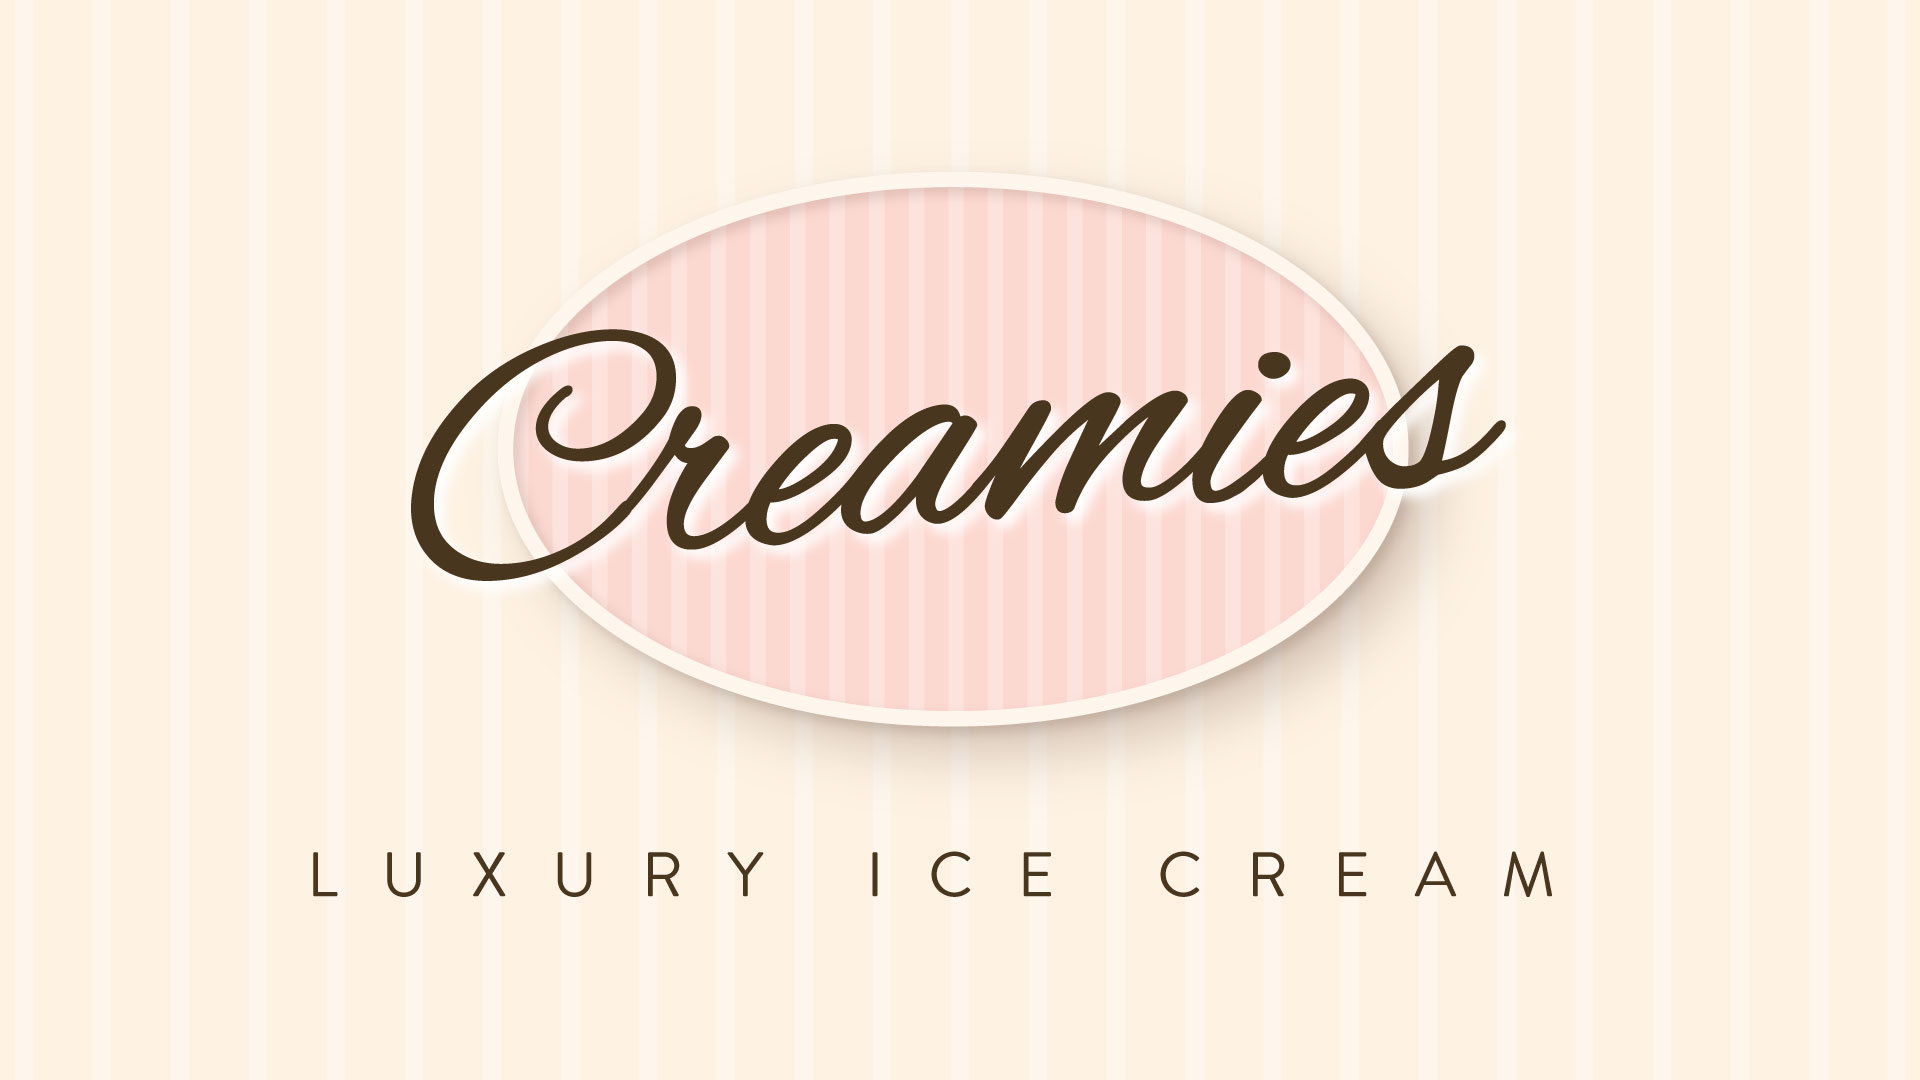 Creamies-graphics-for-website1